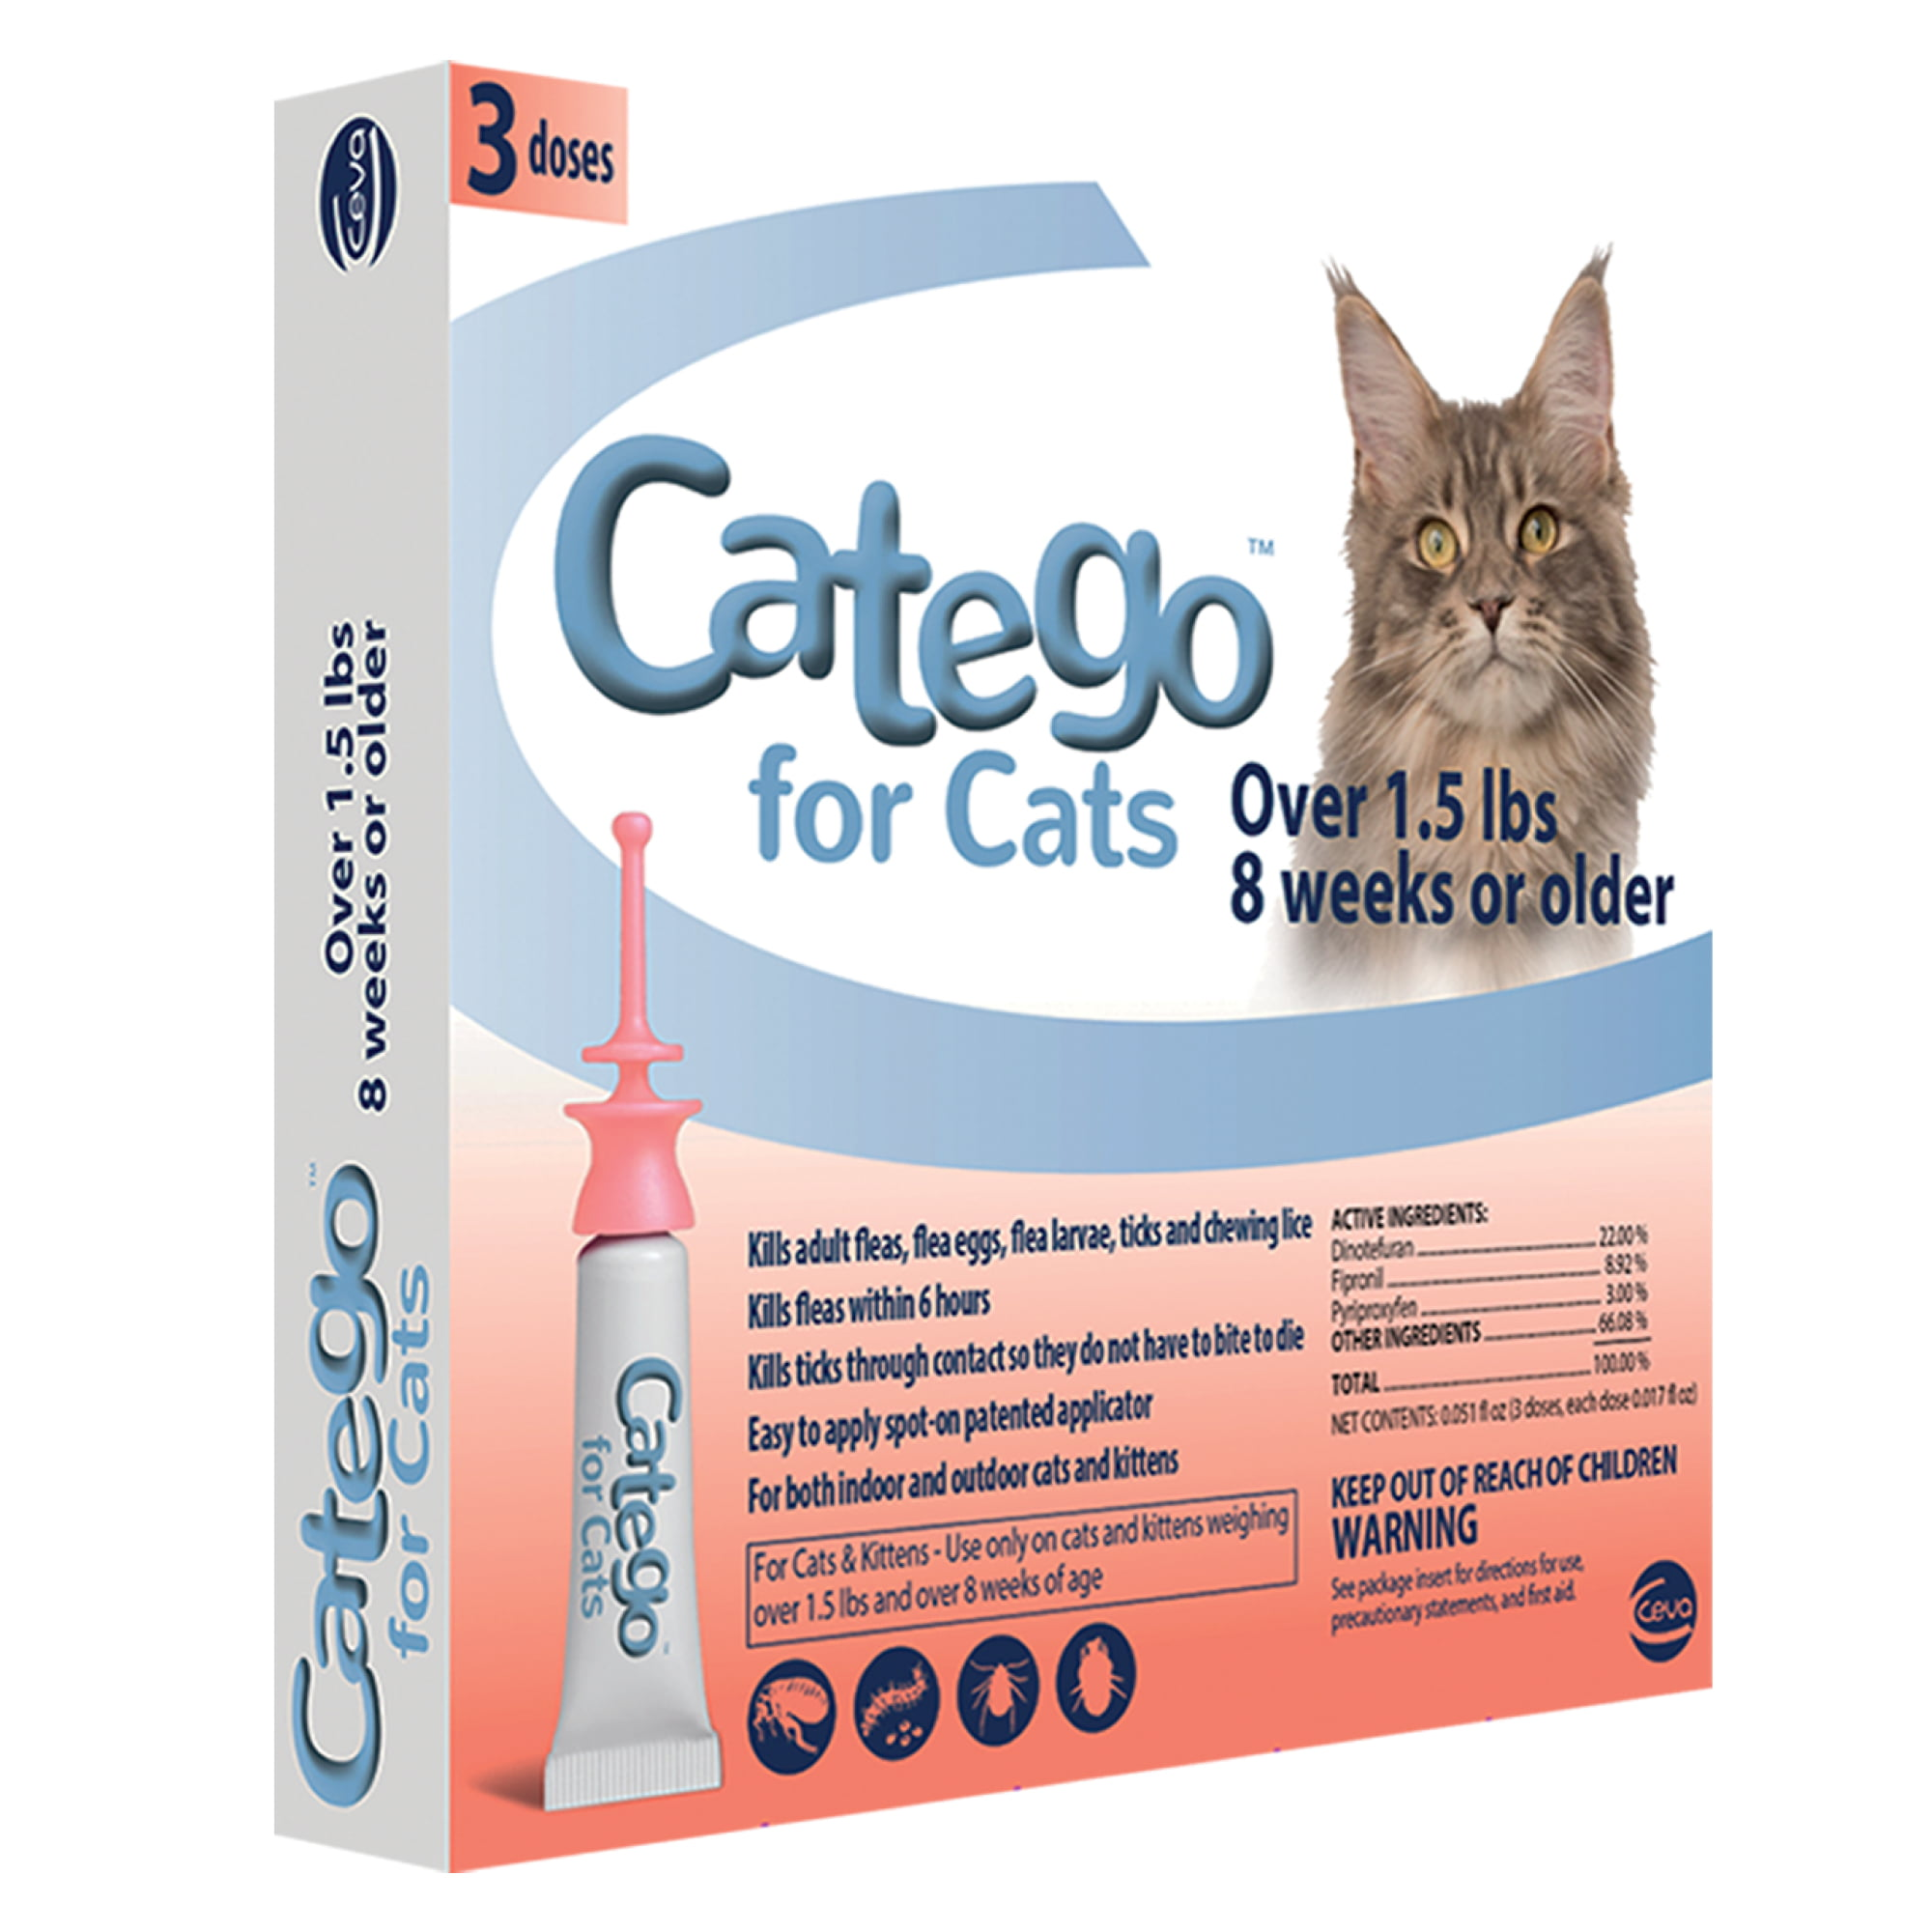 Catego Flea & Tick Control for Cats (3 Doses) by CEVA